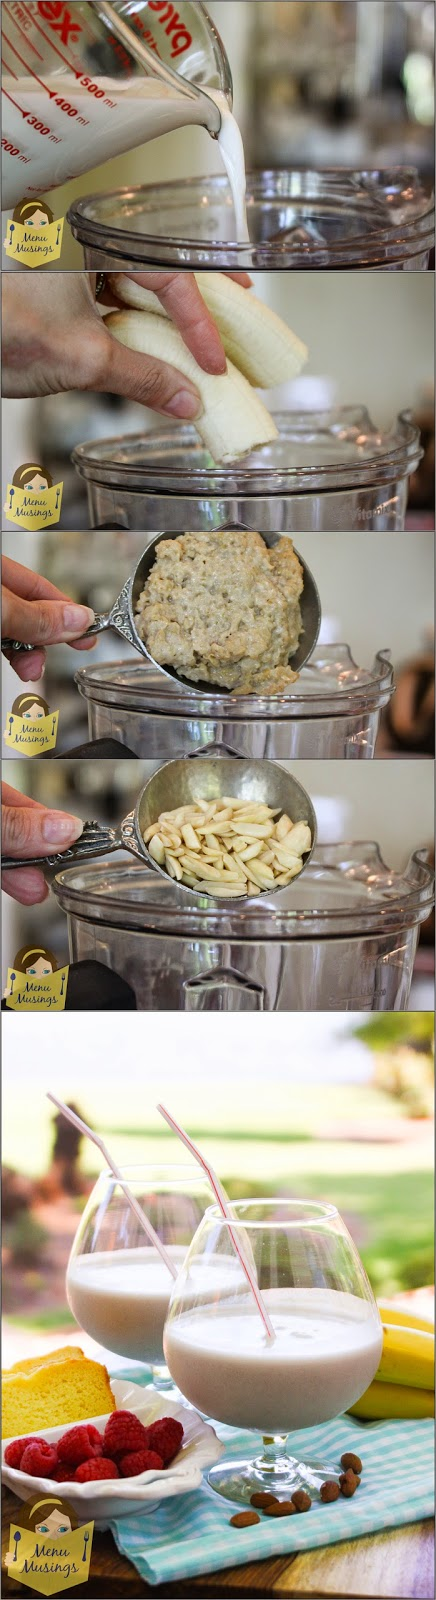 http://menumusings.blogspot.com/2014/05/oatmeal-banana-smoothies.html